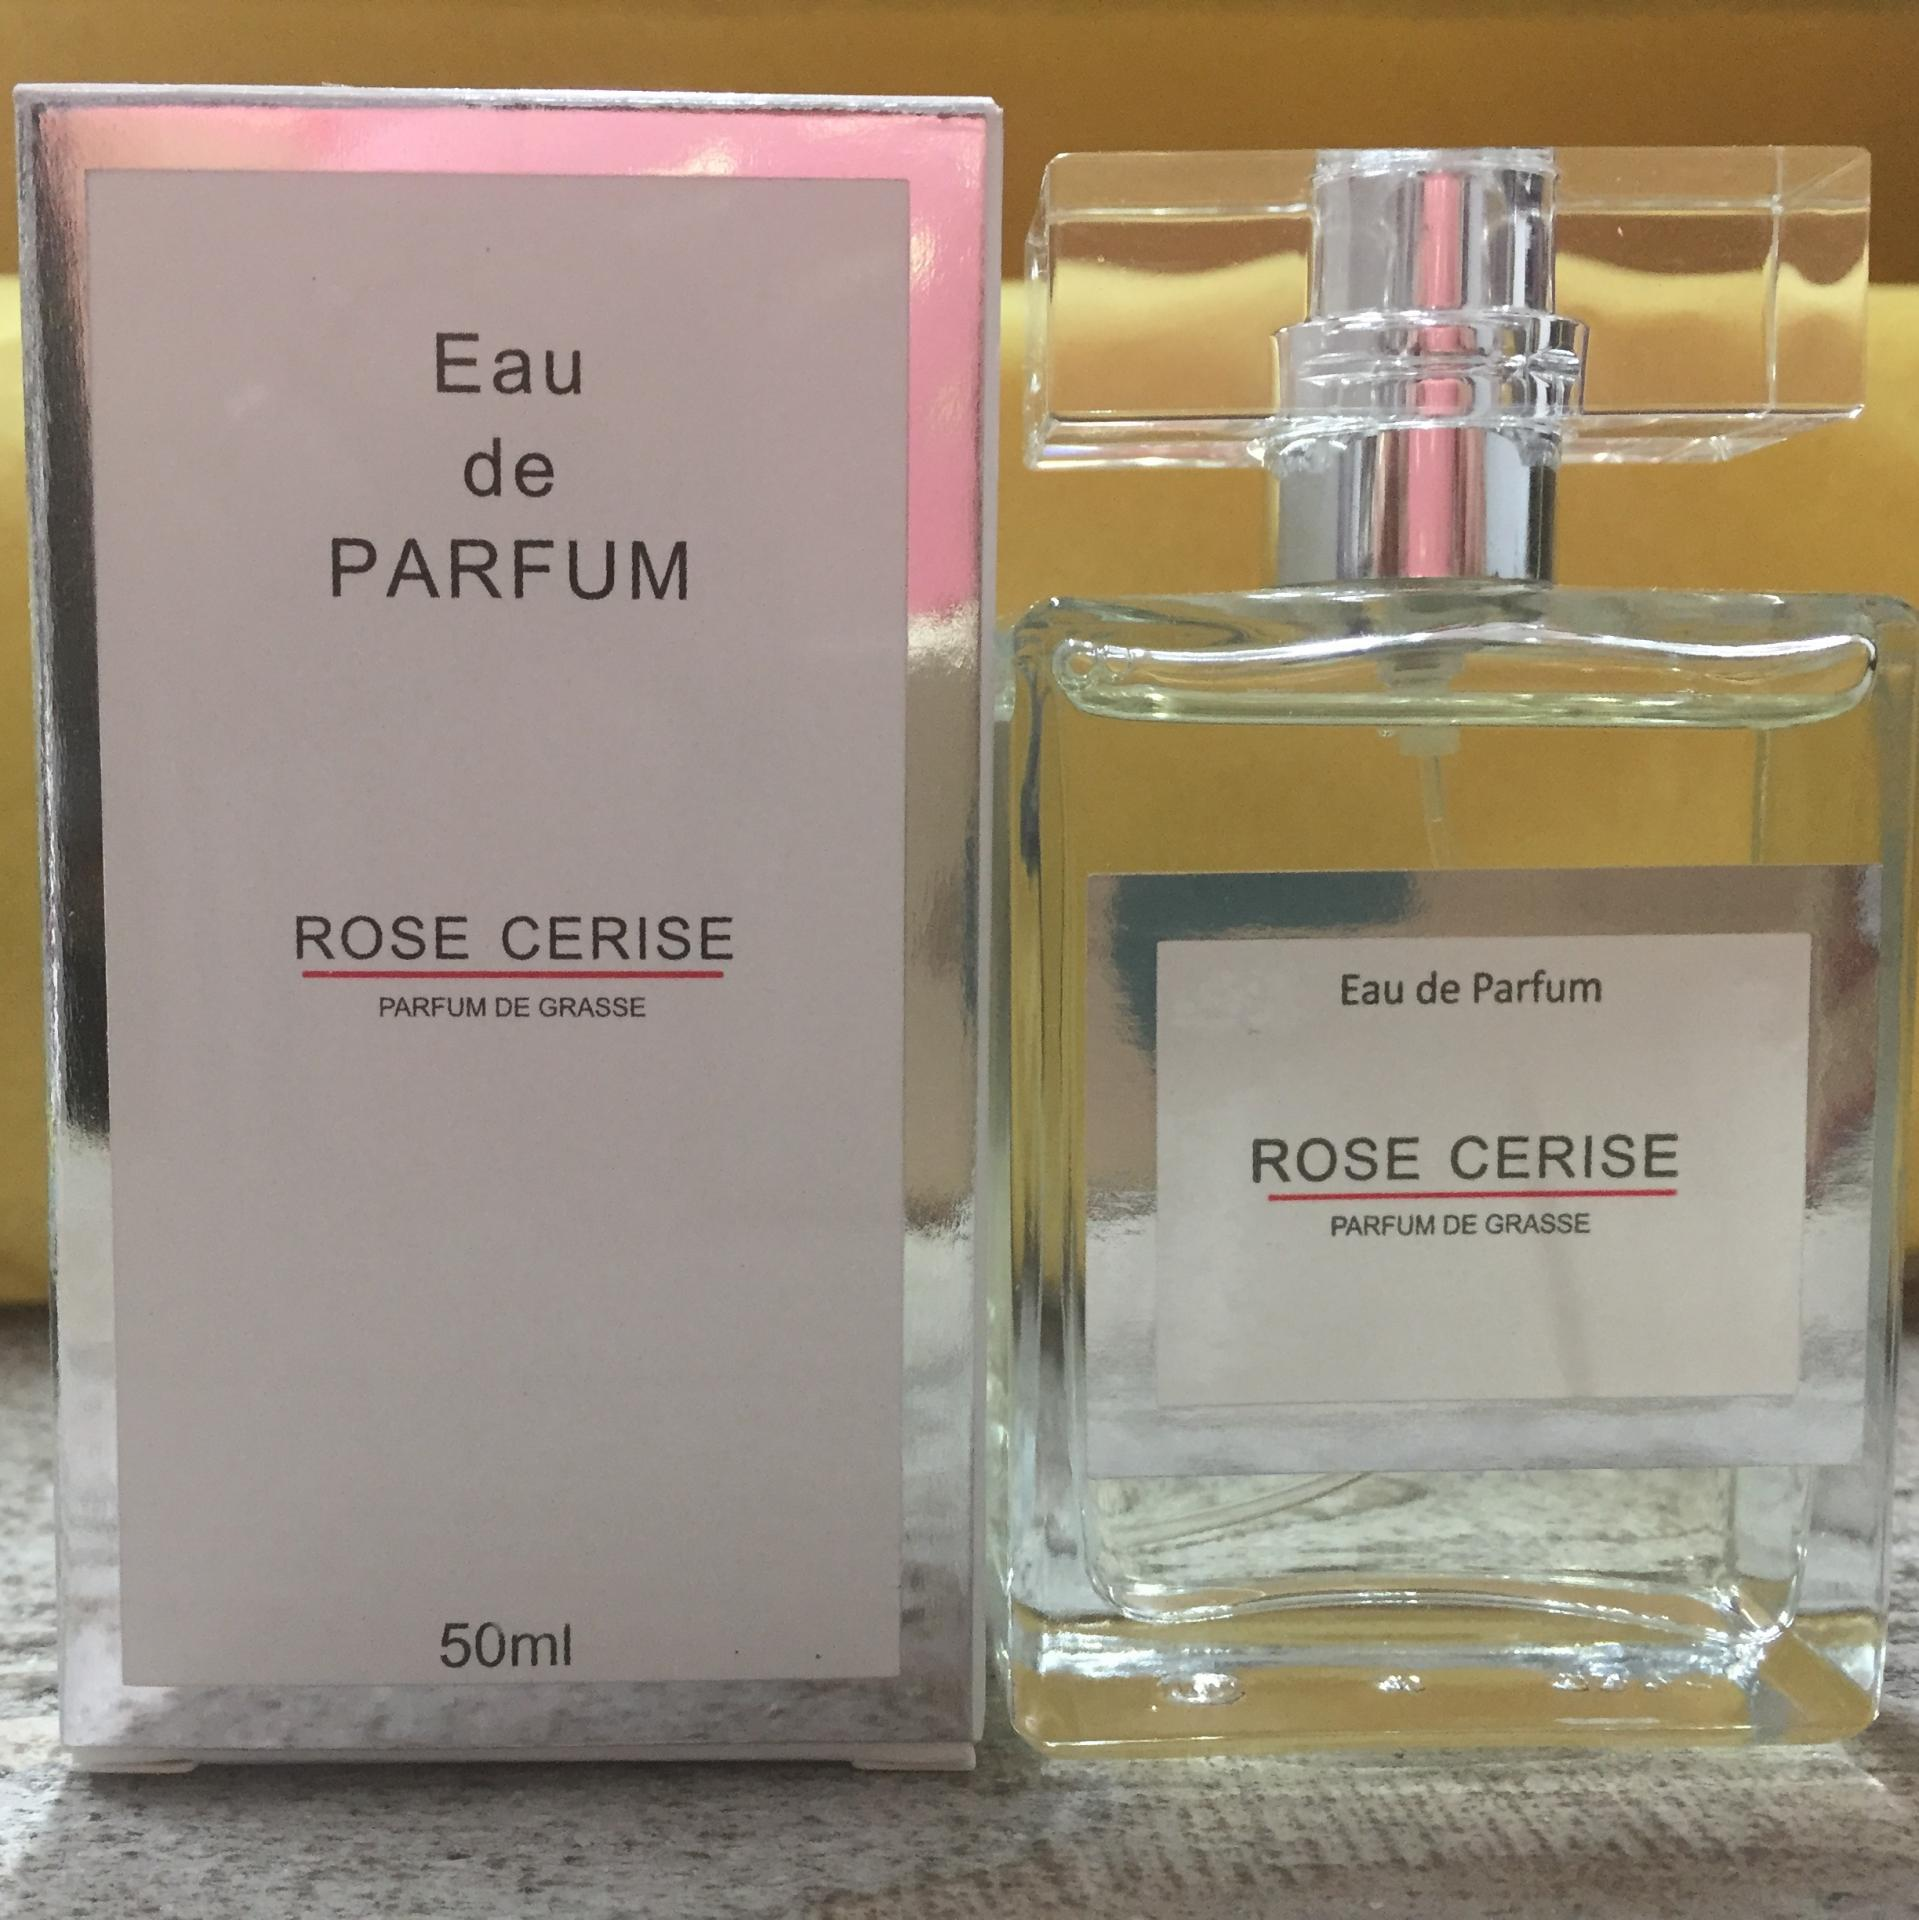 Parfum de grasse edp 50 ml rose cerise 2